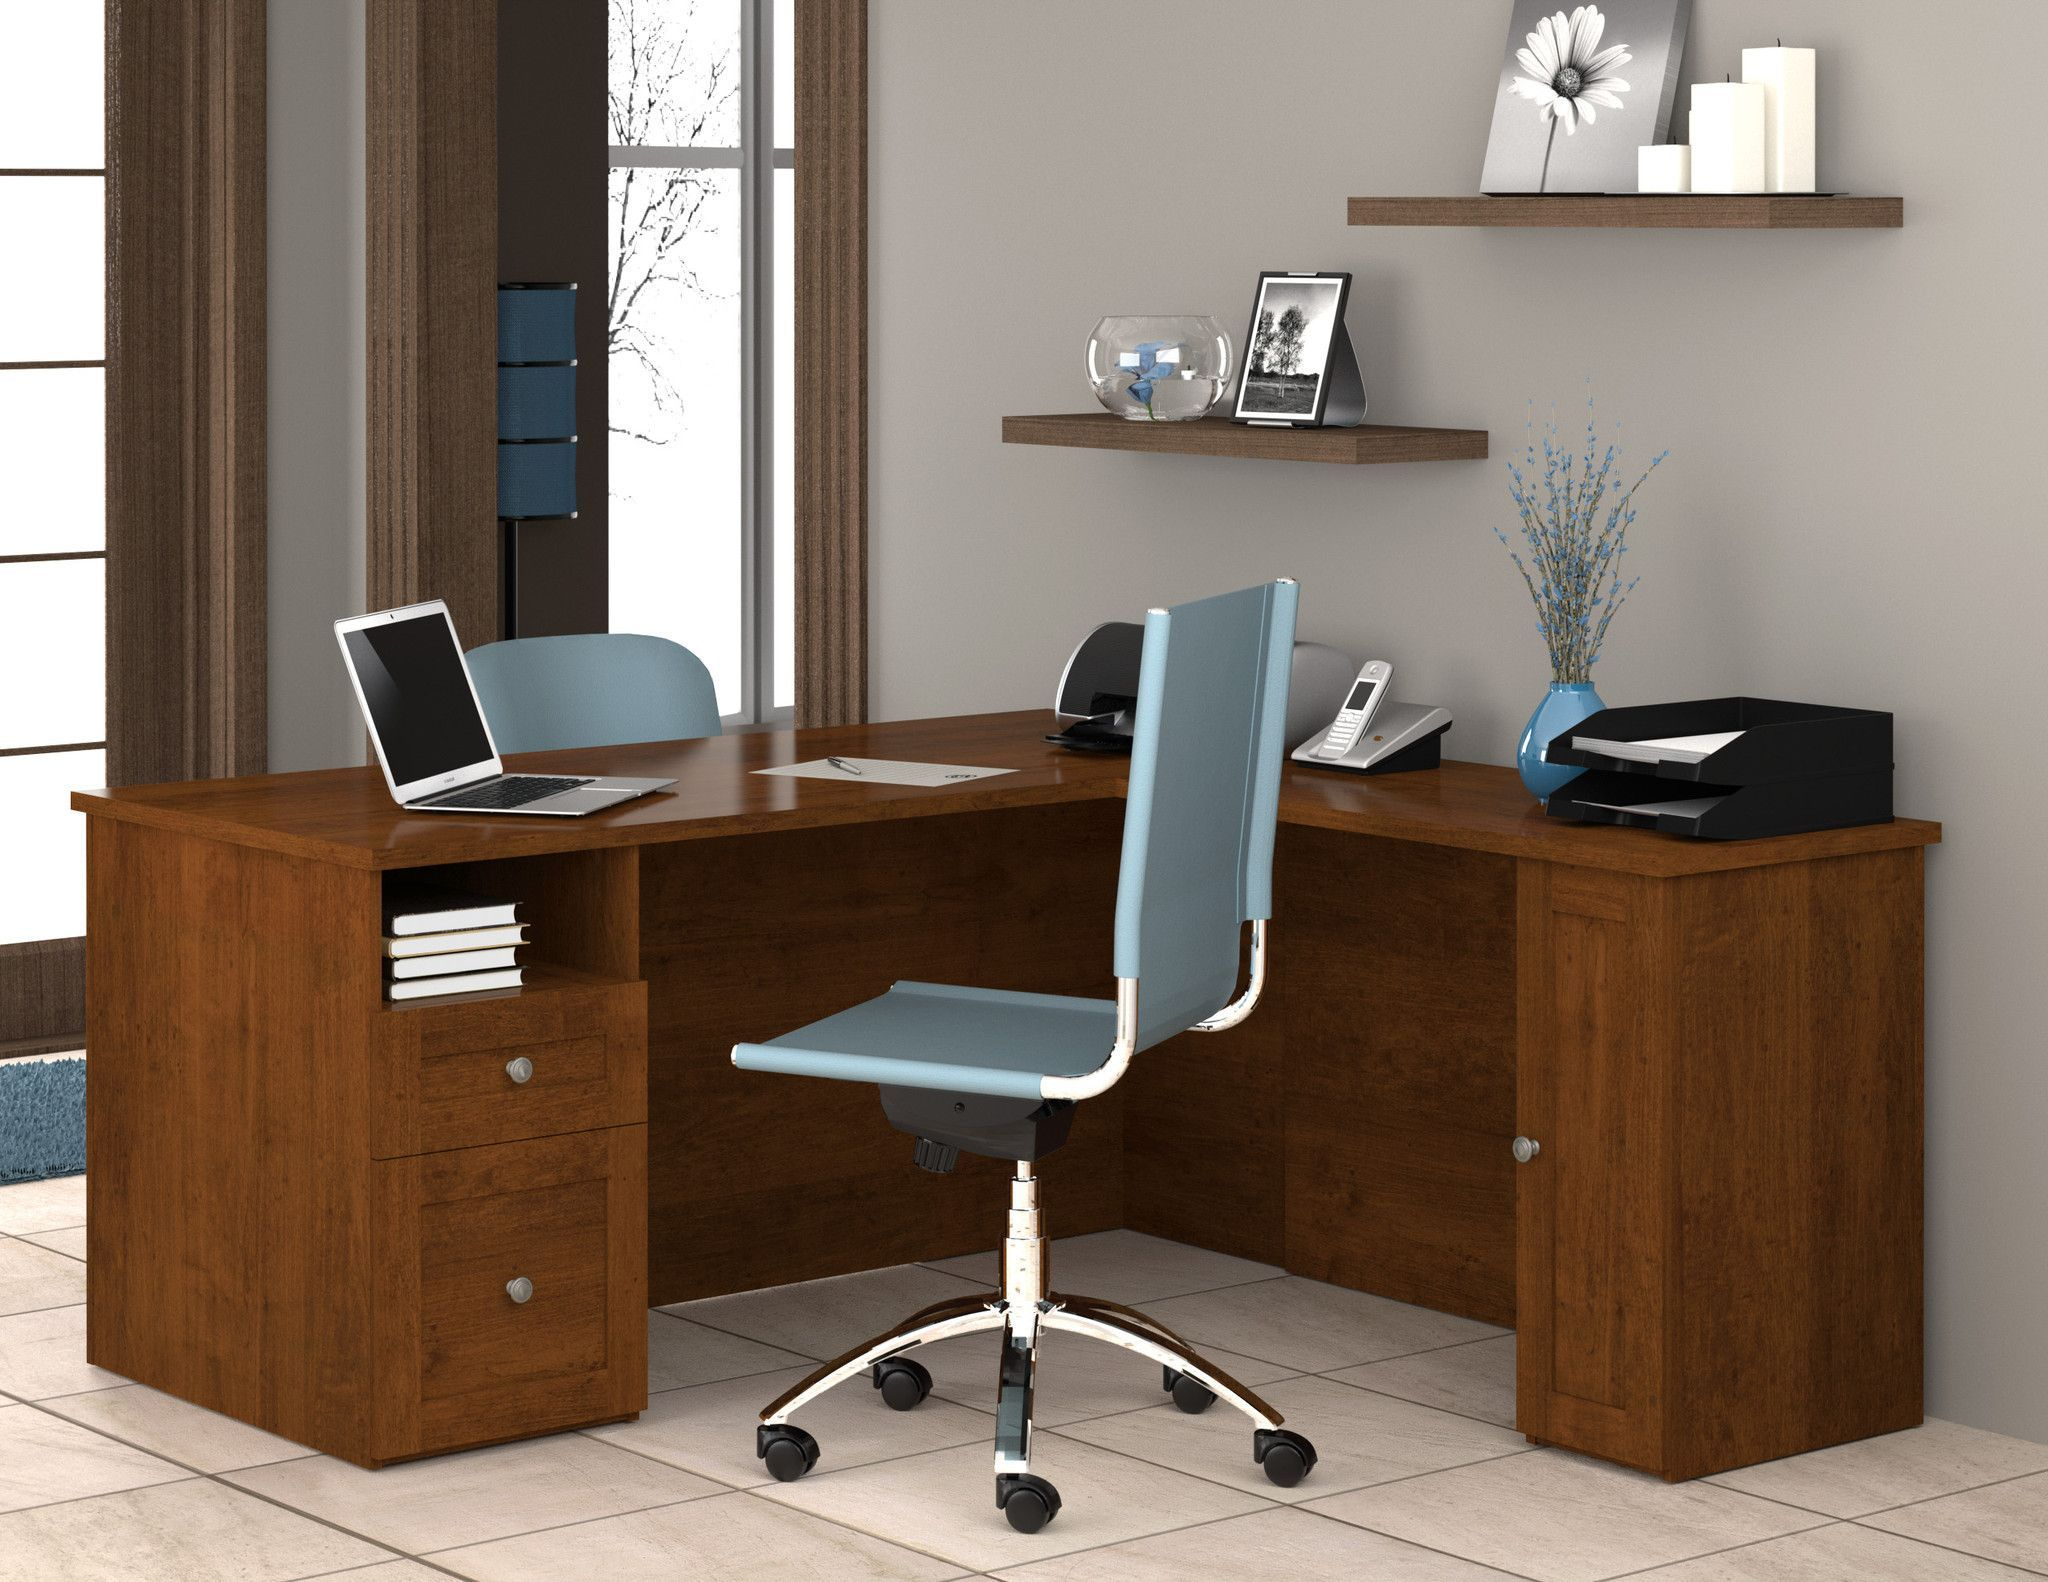 Mason lshaped desk in tuscany brown with optional storage cabinet